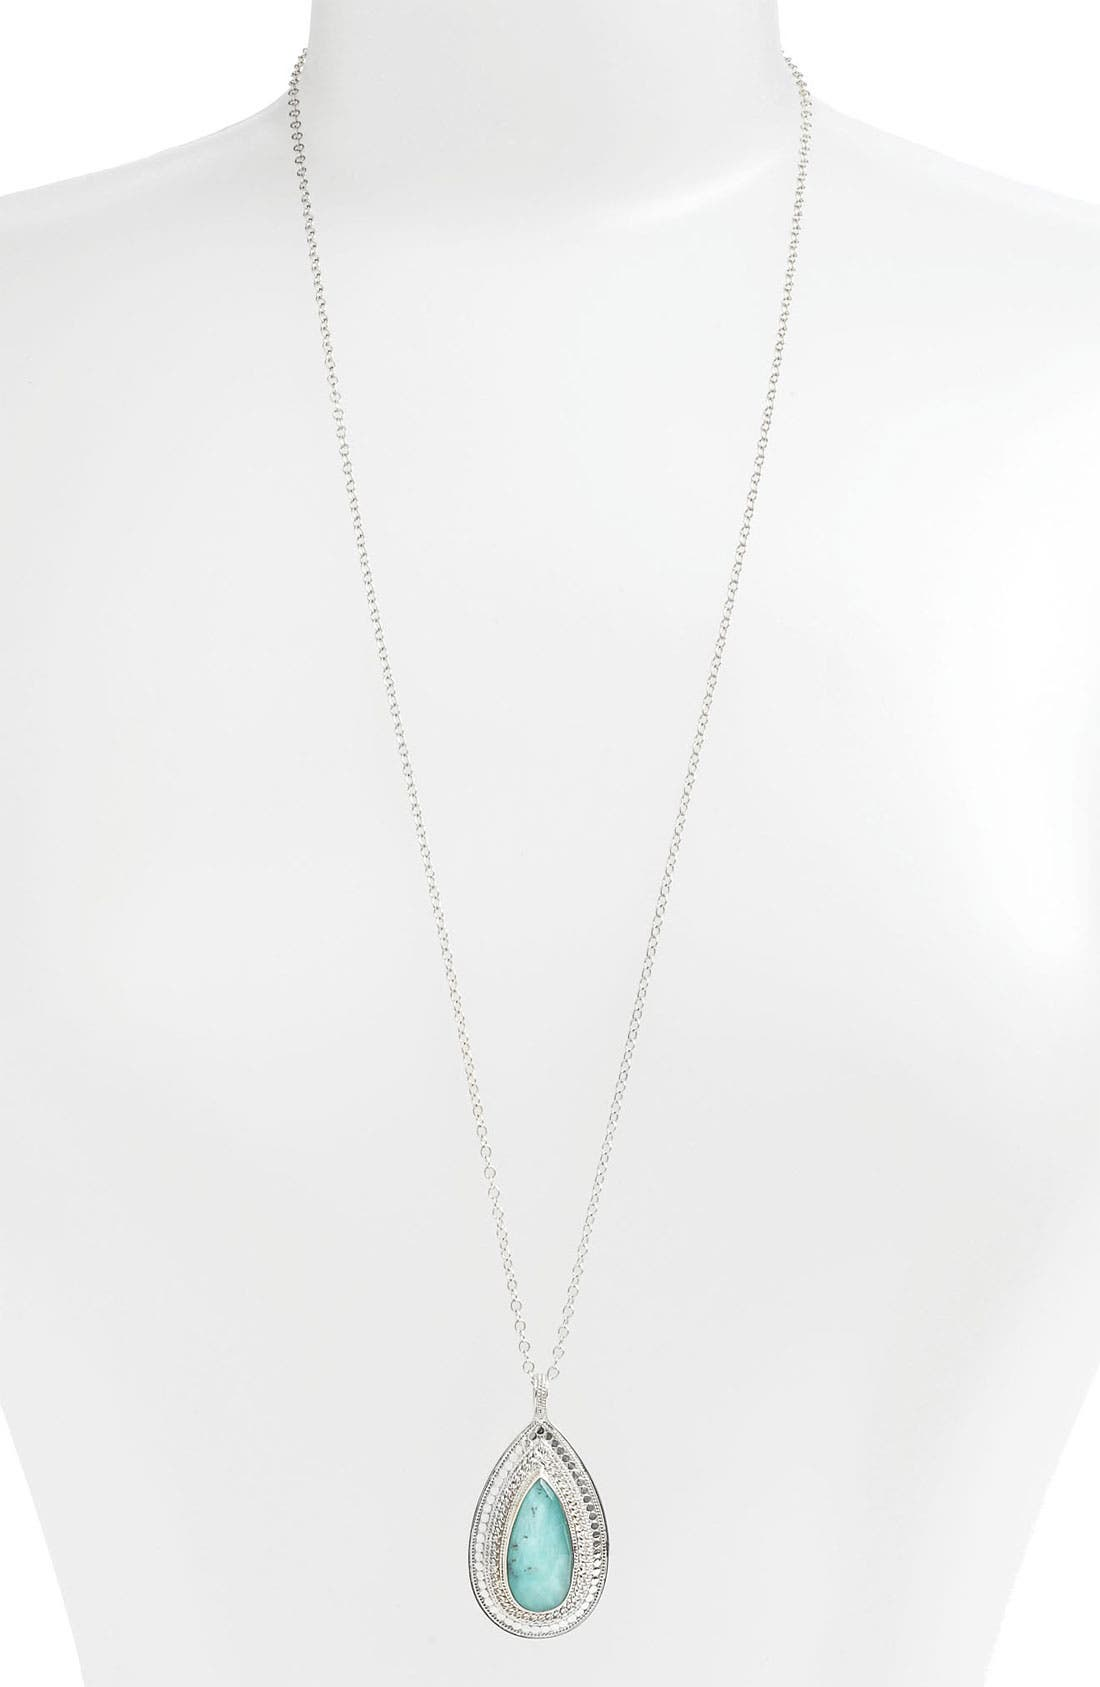 Main Image - Anna Beck 'Gili' Teardrop Pendant Necklace